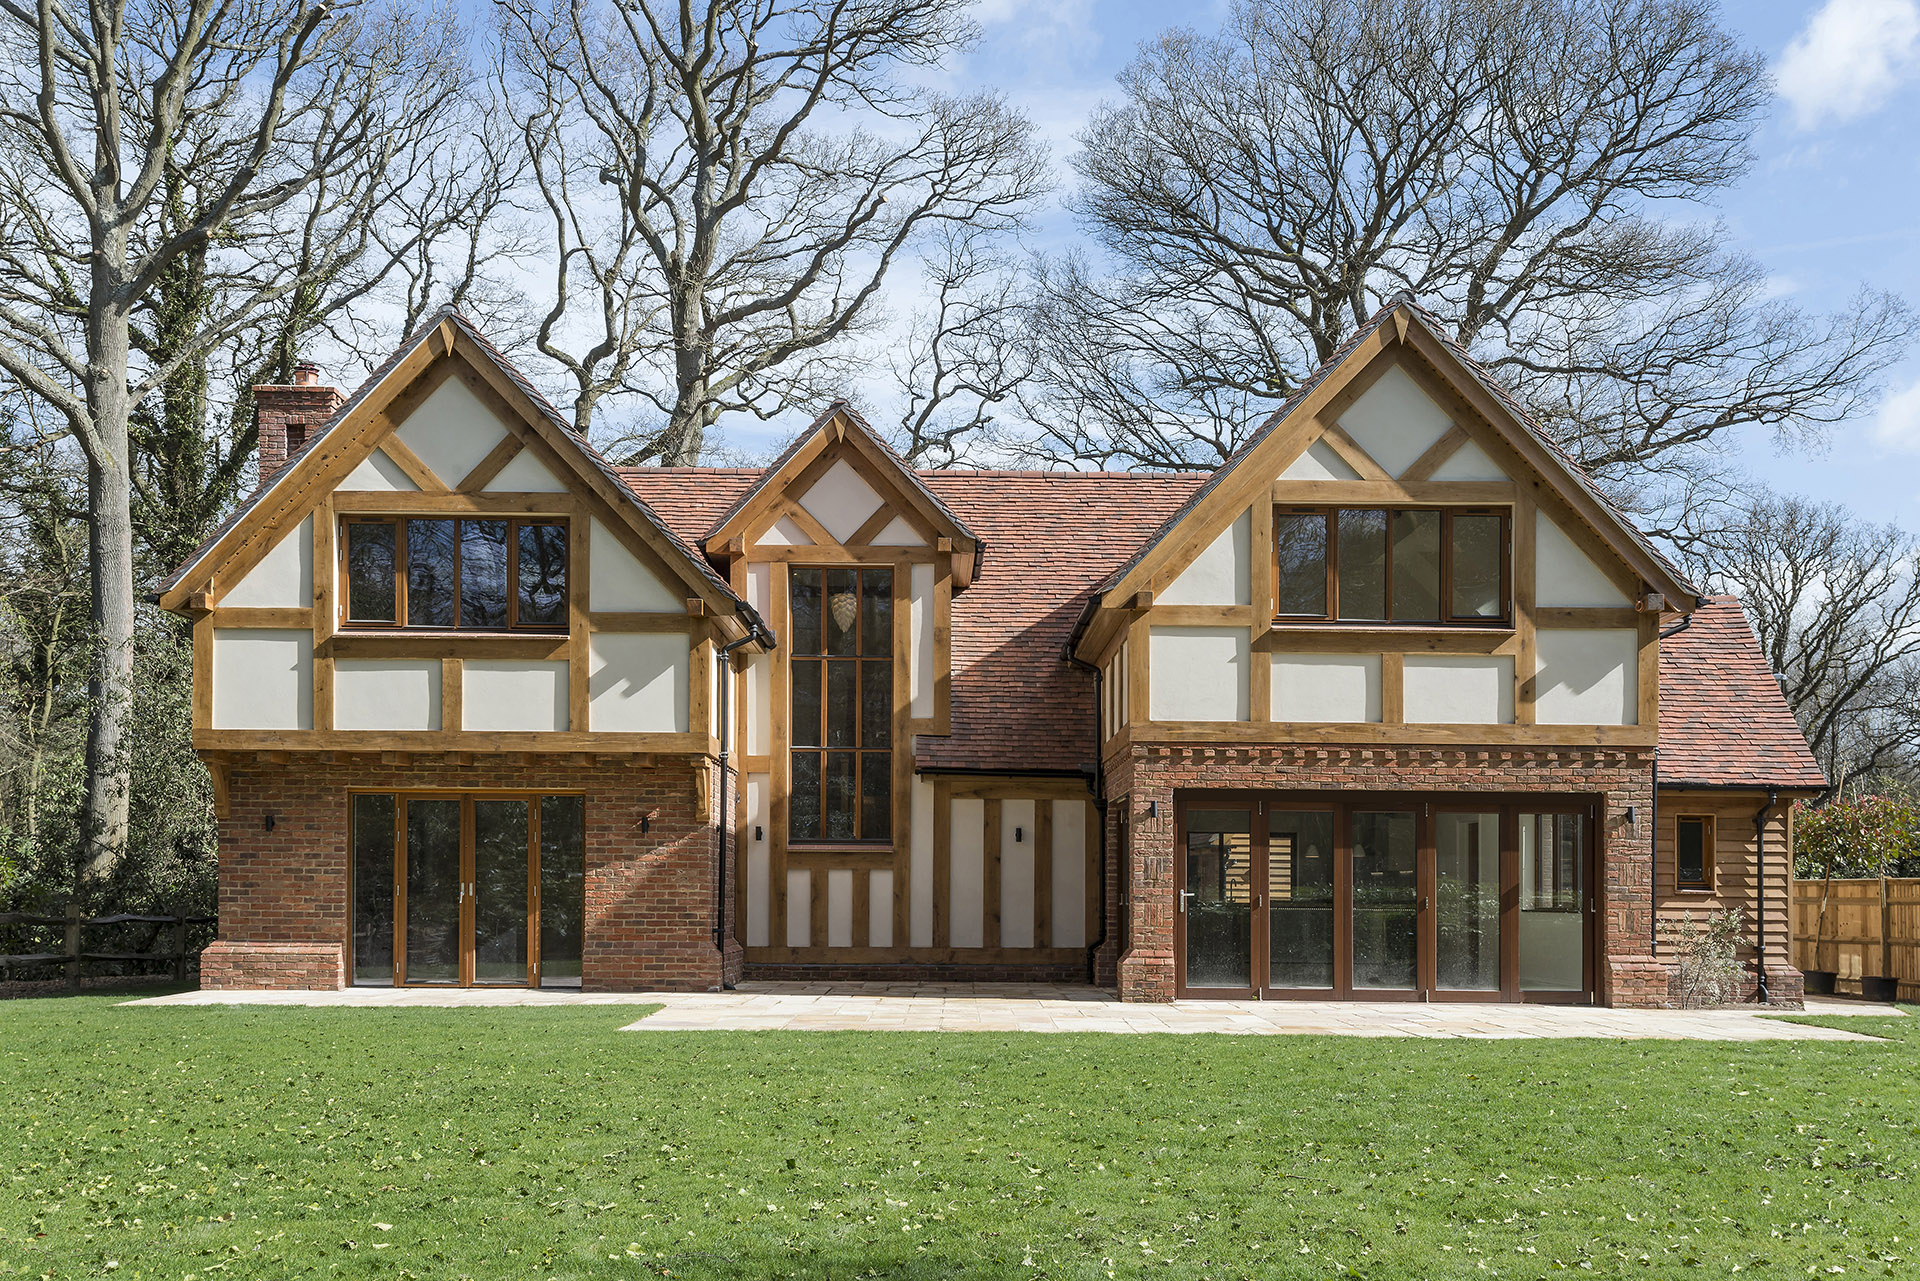 The langford timber framed home designs scandia hus for Oak framed house designs